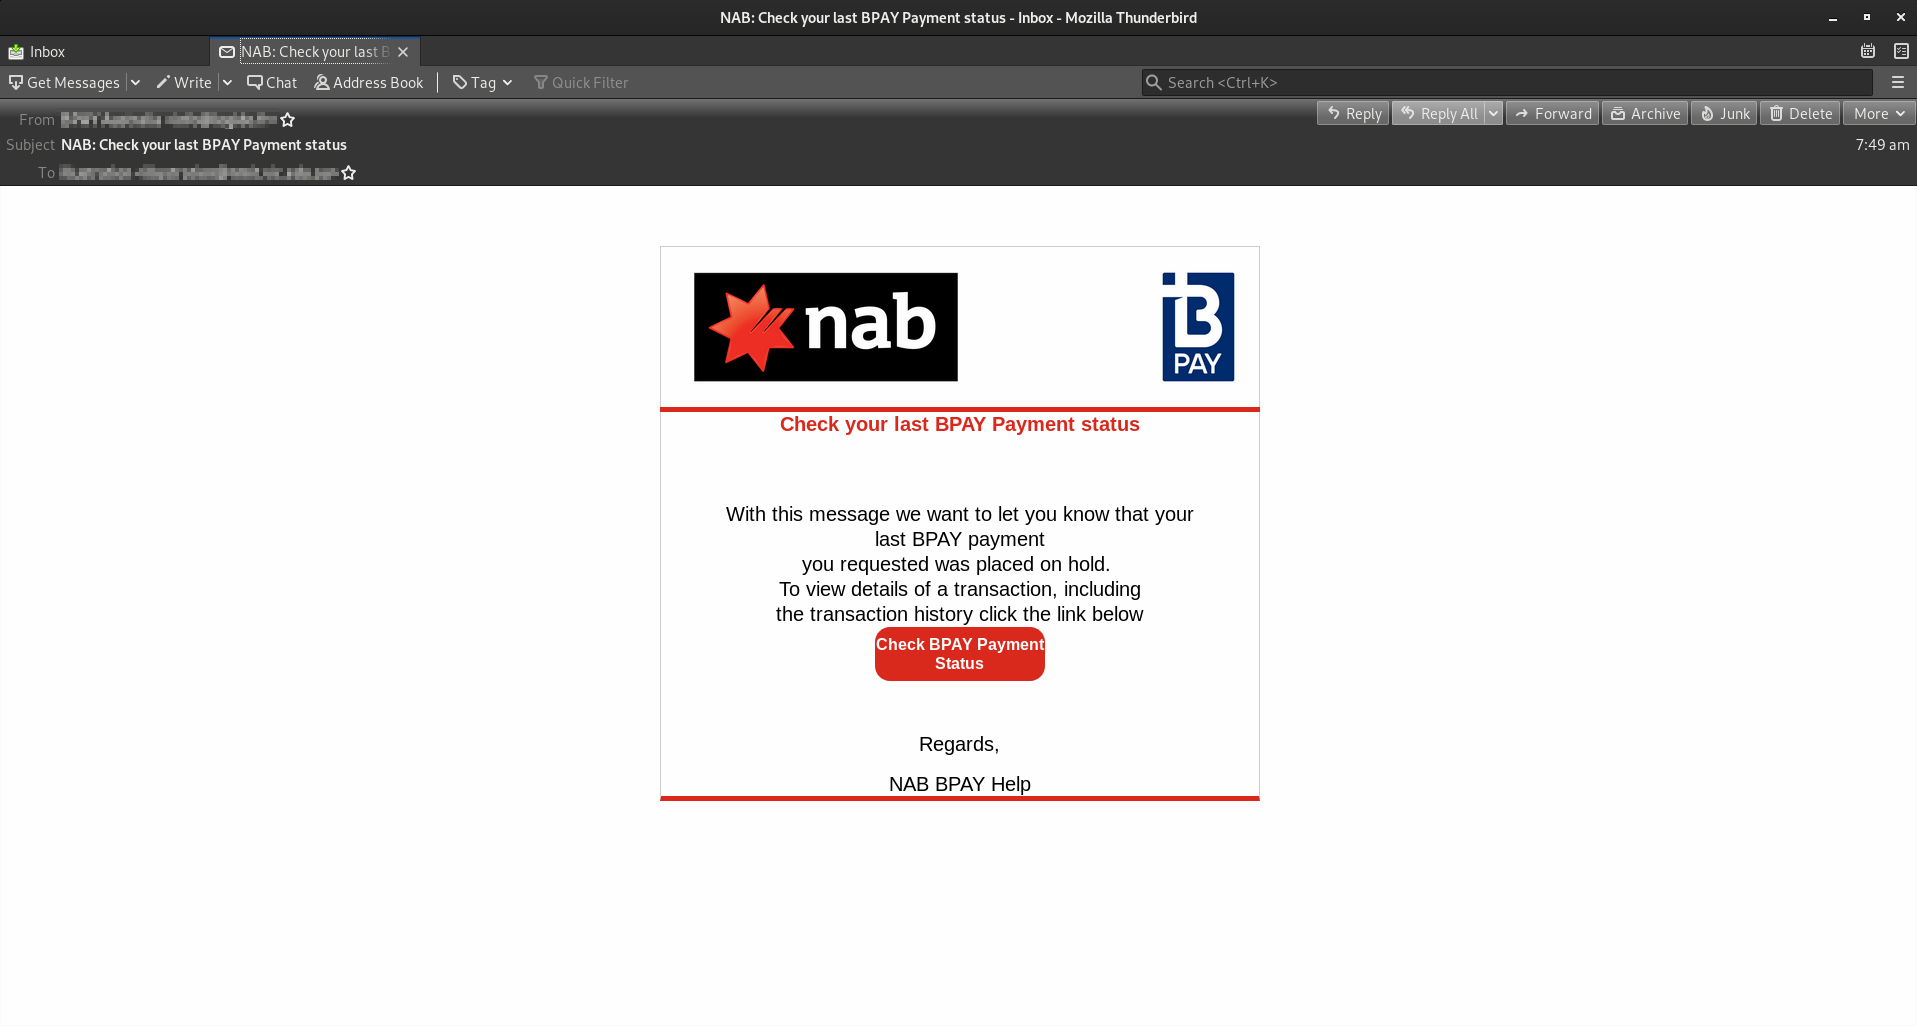 NAB scam: Fake BPAY transaction attempts to steal personal